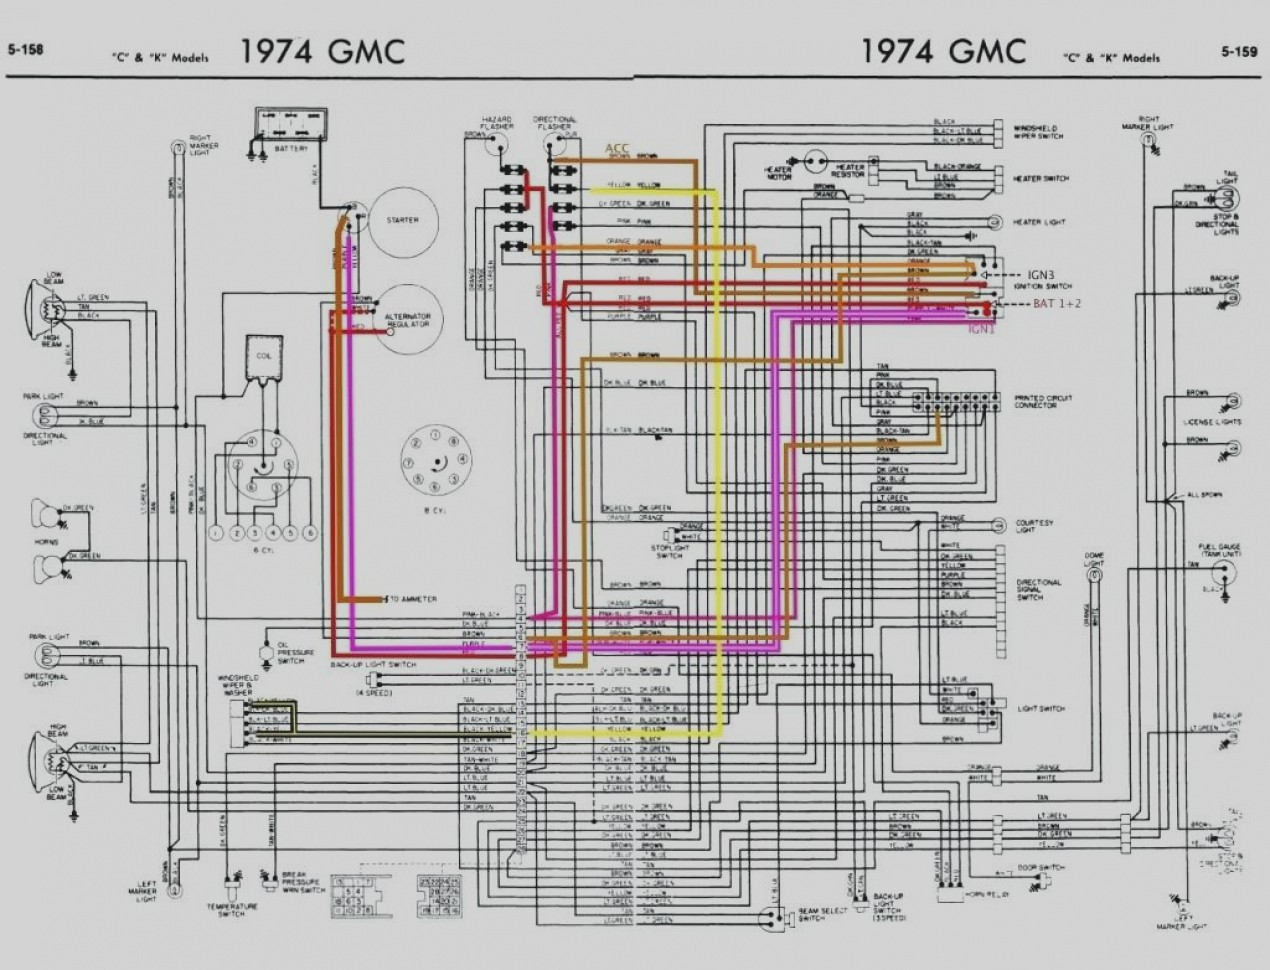 1970 gmc wiring harness talk about wiring diagram  1972 chevy wiring diagram #13